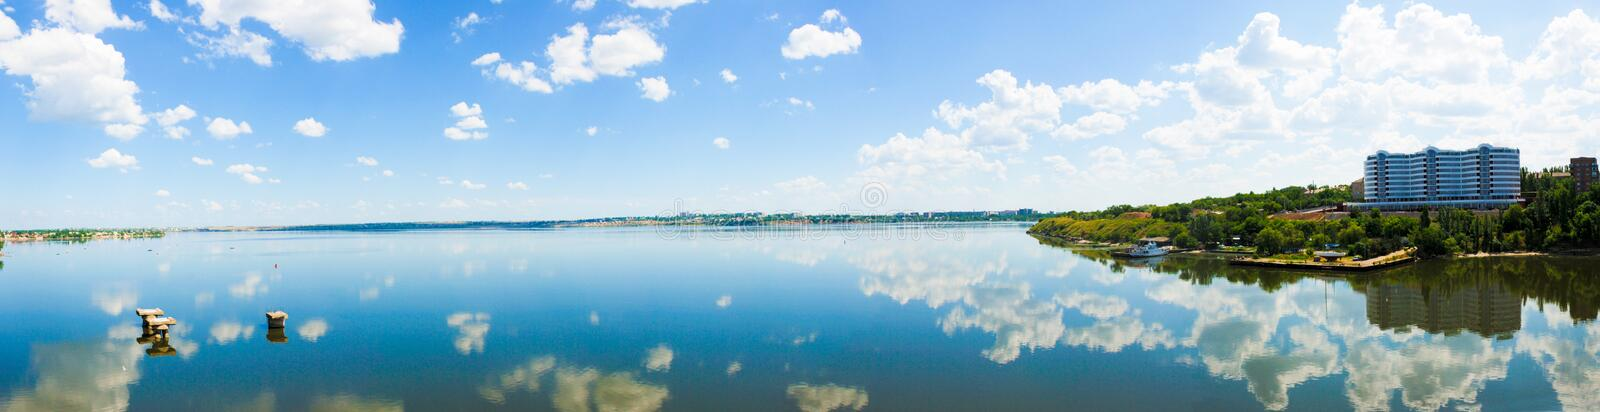 Download River Panorama Royalty Free Stock Photography - Image: 5471297